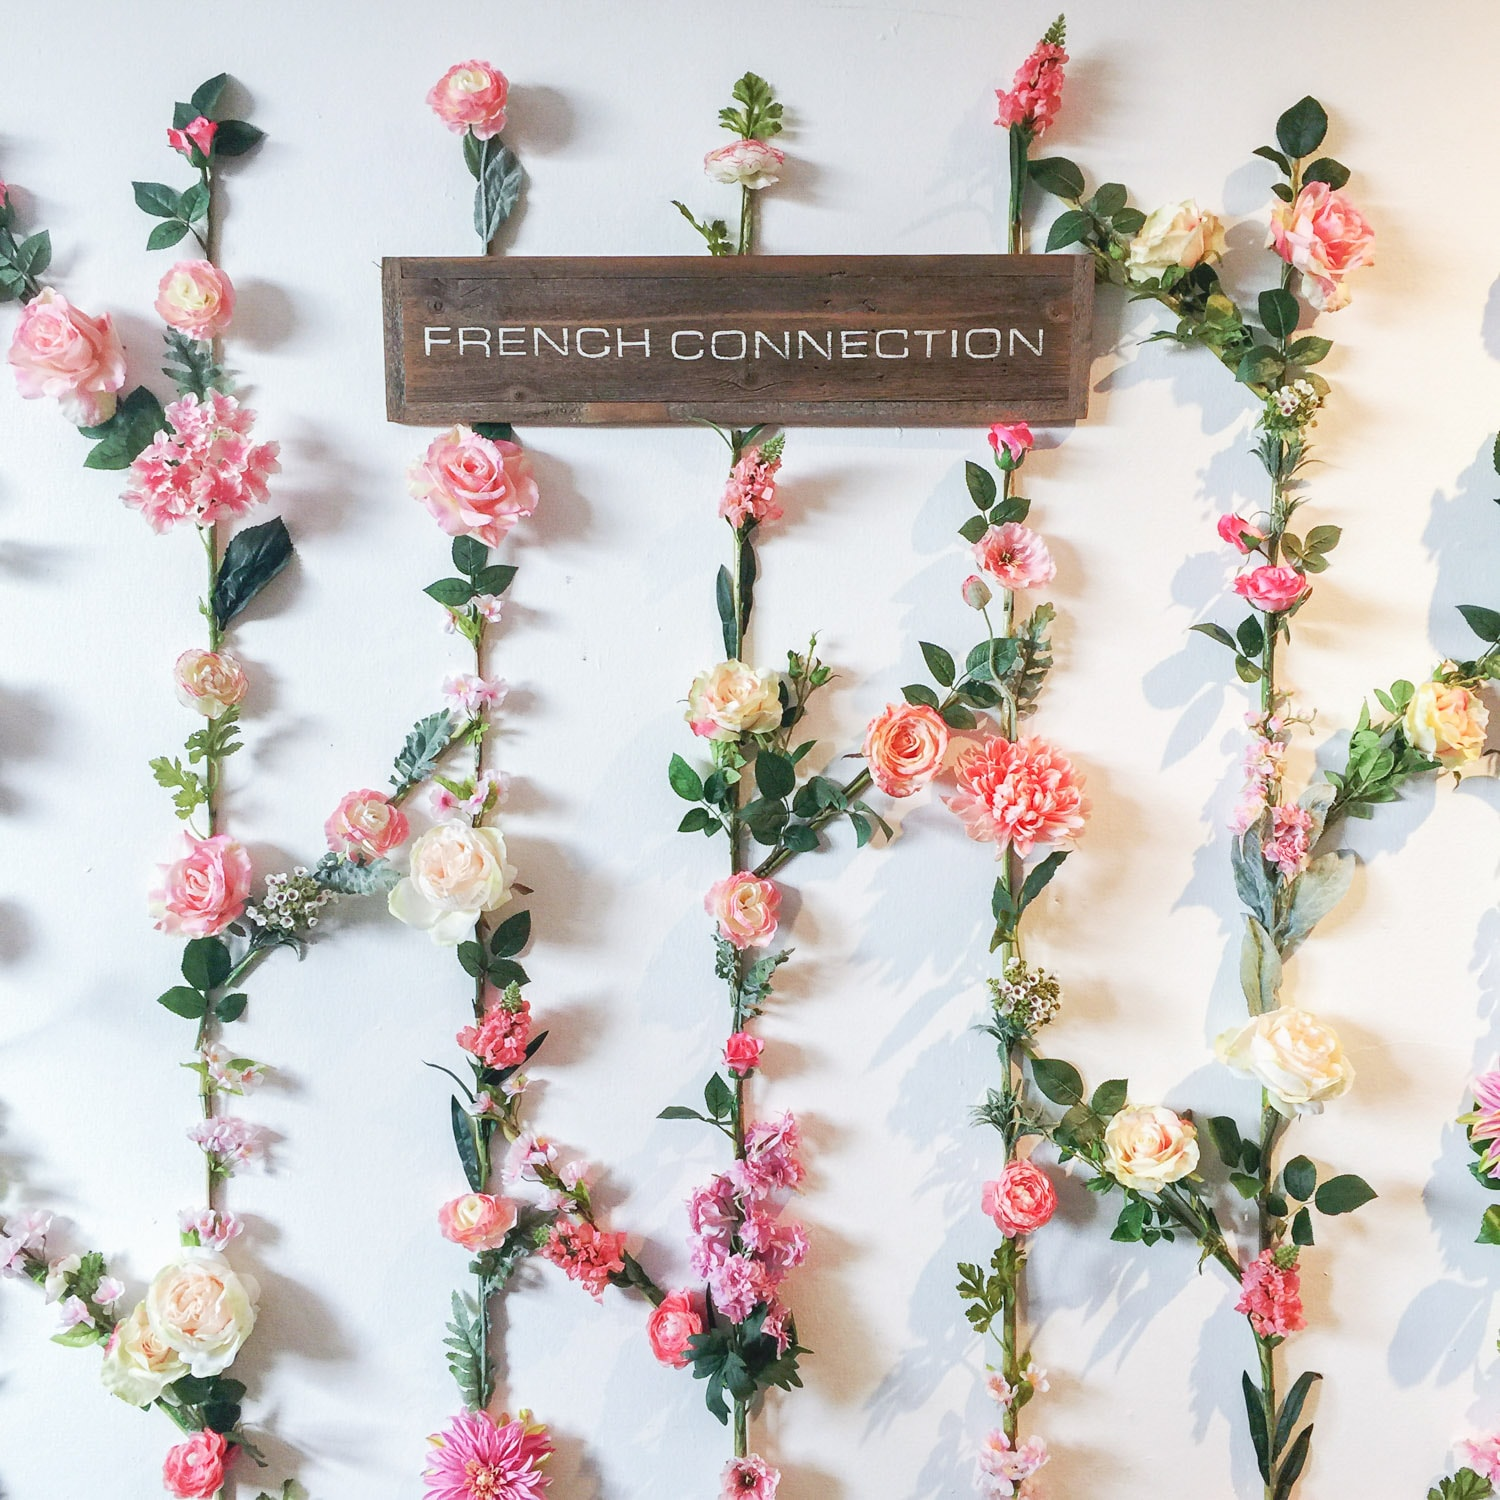 French Connection display | Create + Cultivate Los Angeles 2016 Conference Recap + Review | Beauty and Style Blogger Ashley Brooke Nicholas